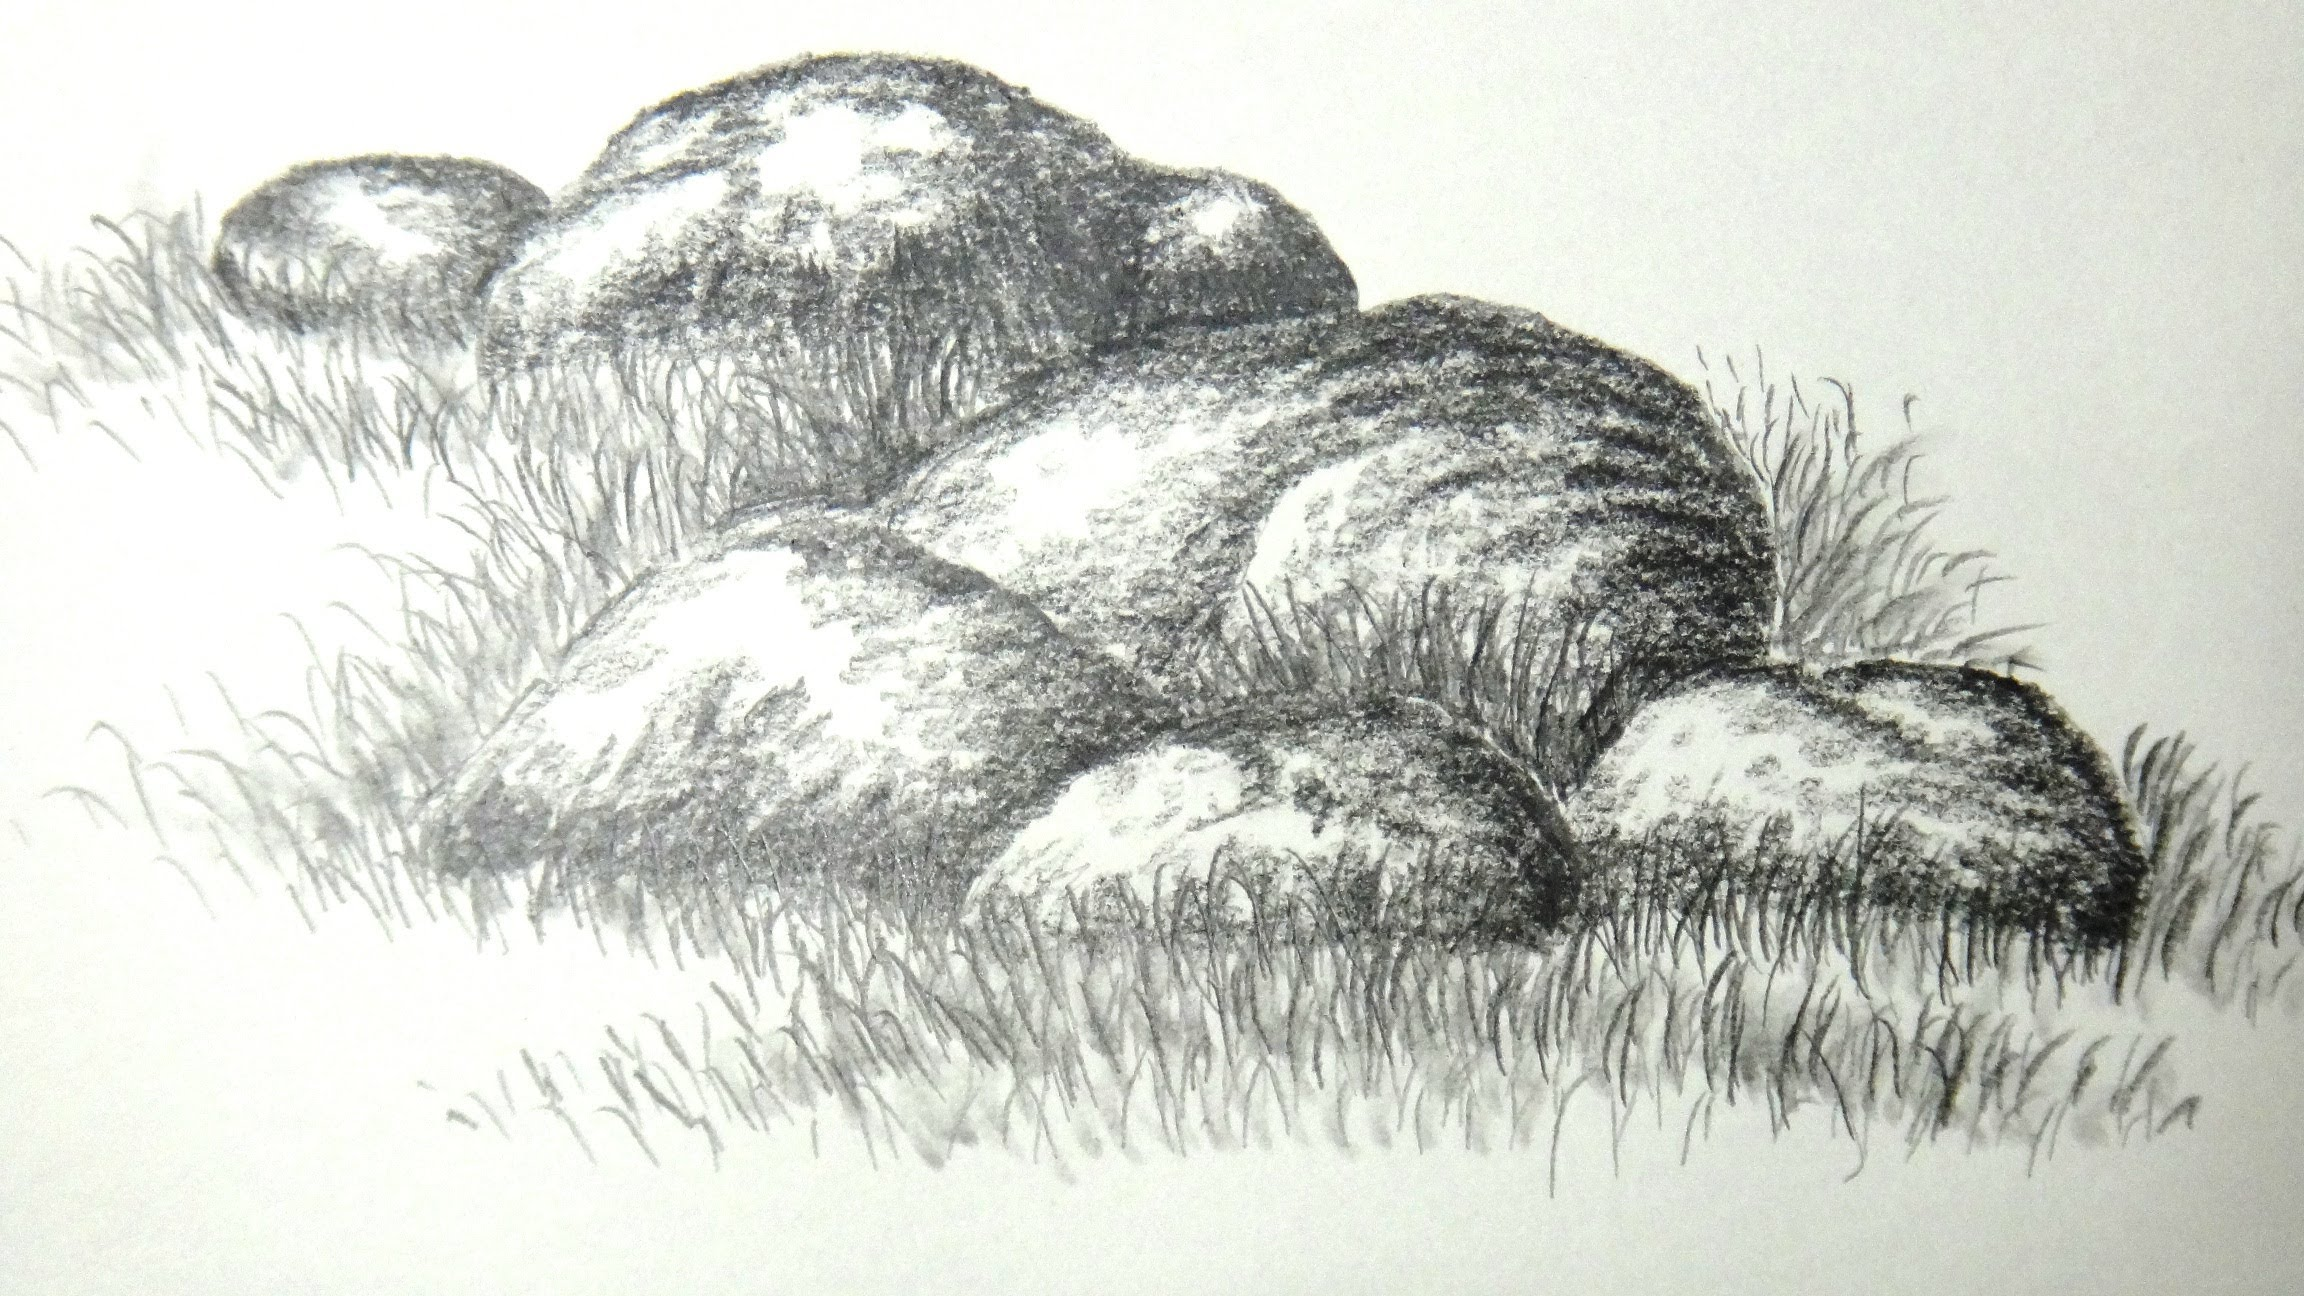 Drawn river grass Pencil to or draw